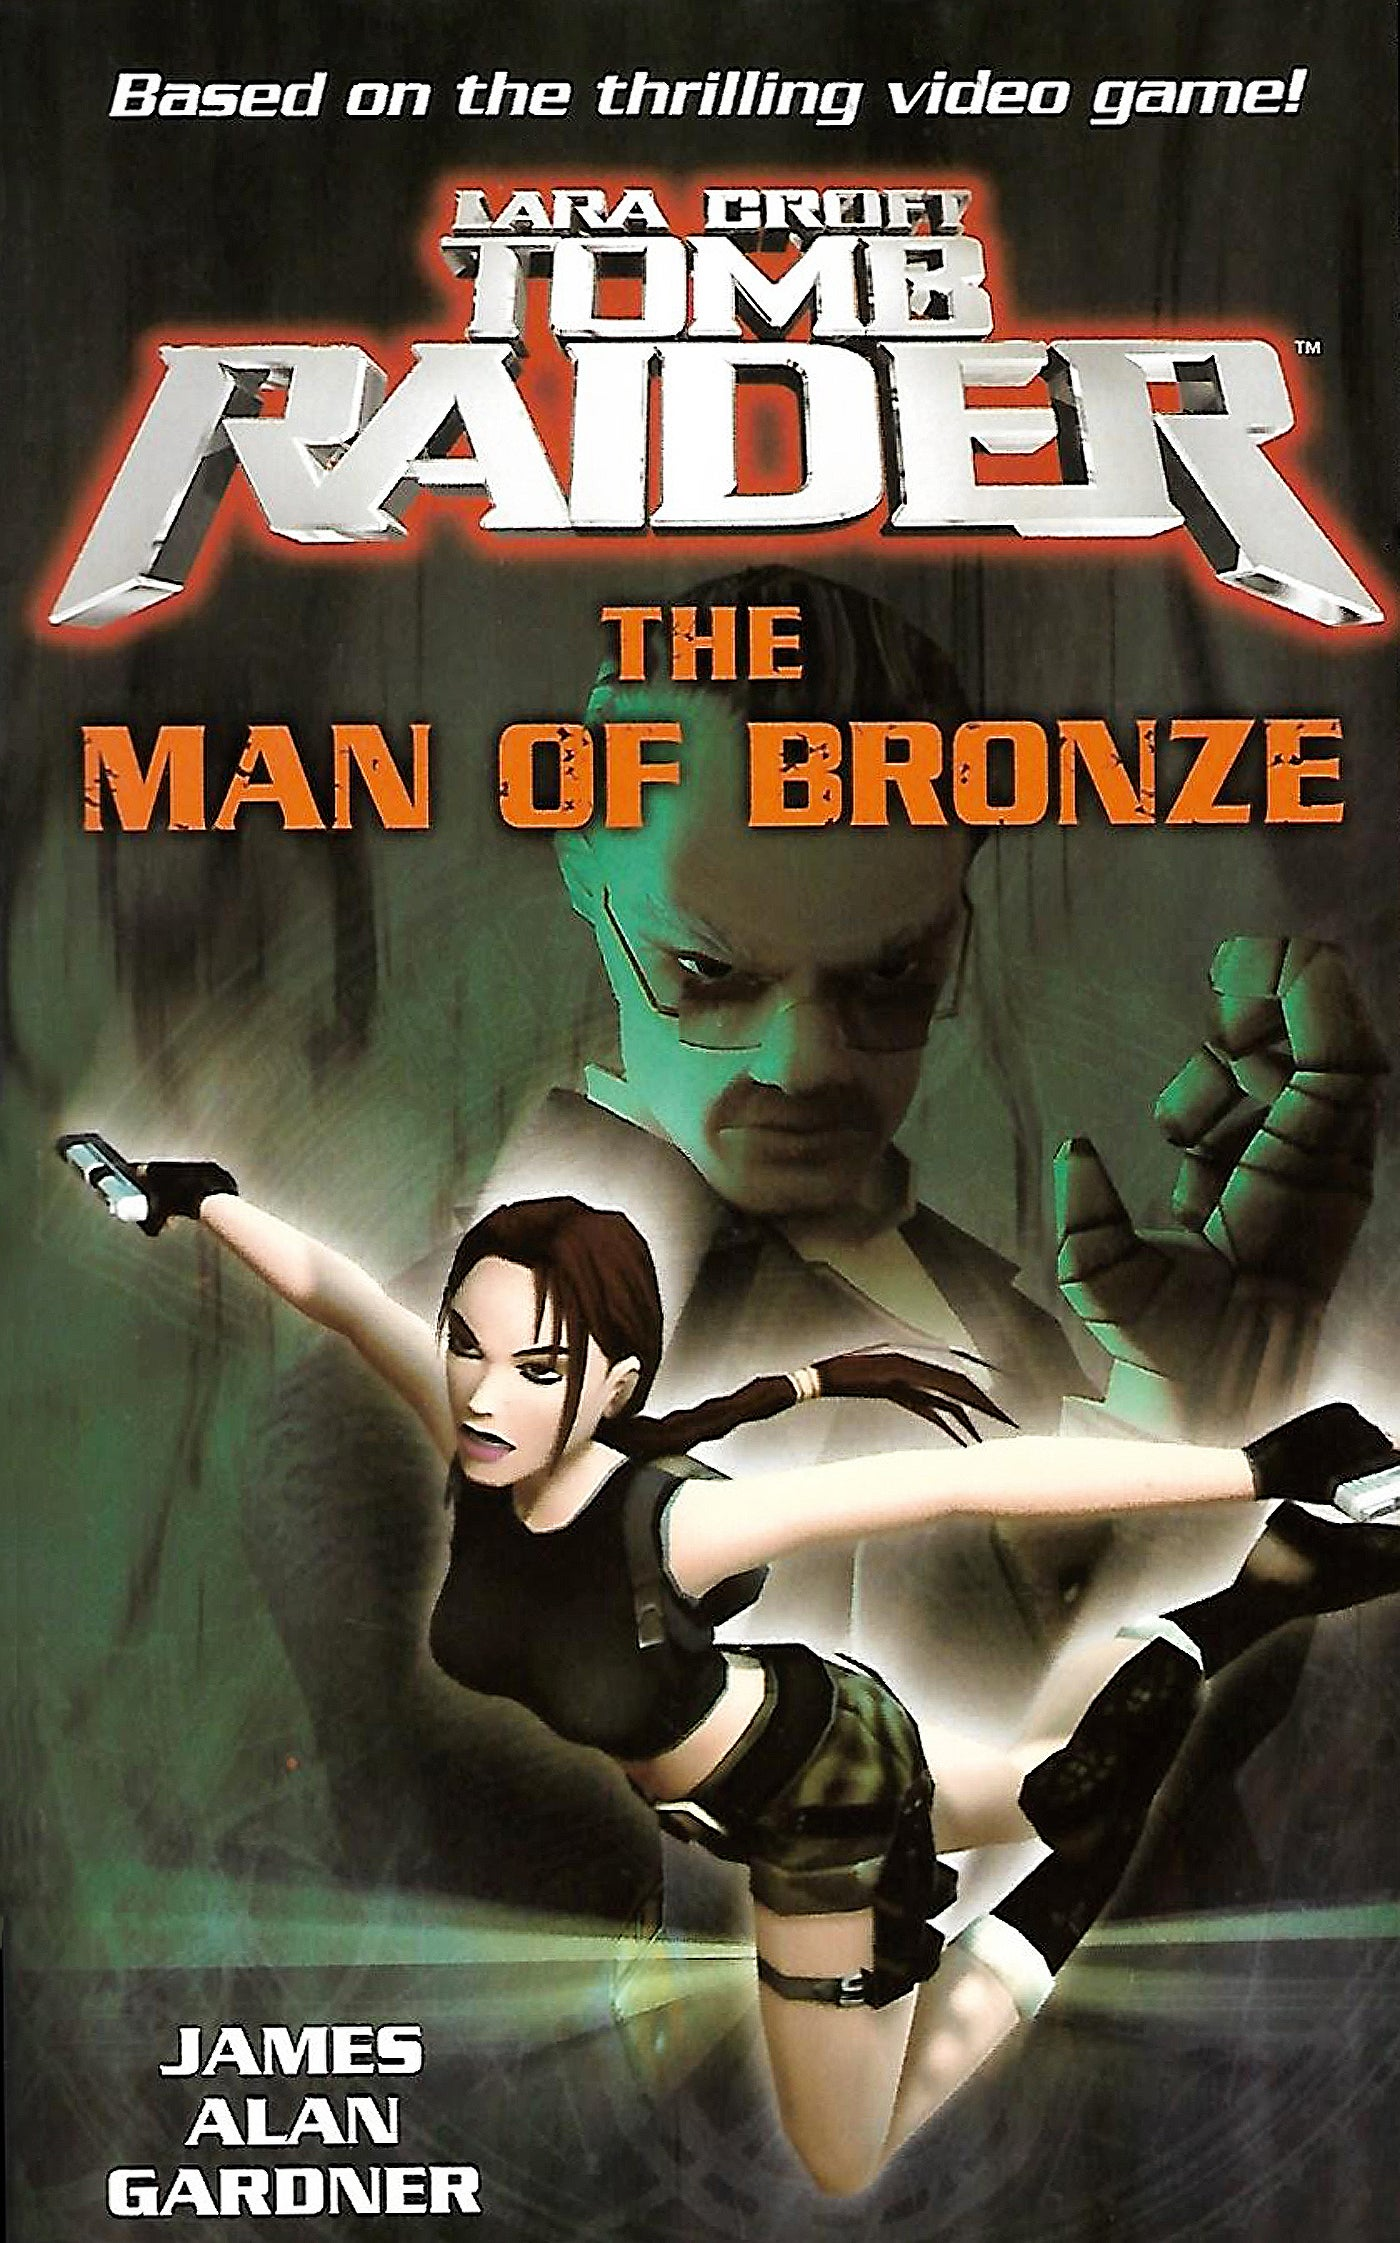 The front cover of novel Lara Croft Tomb Raider: The Man of Bronze